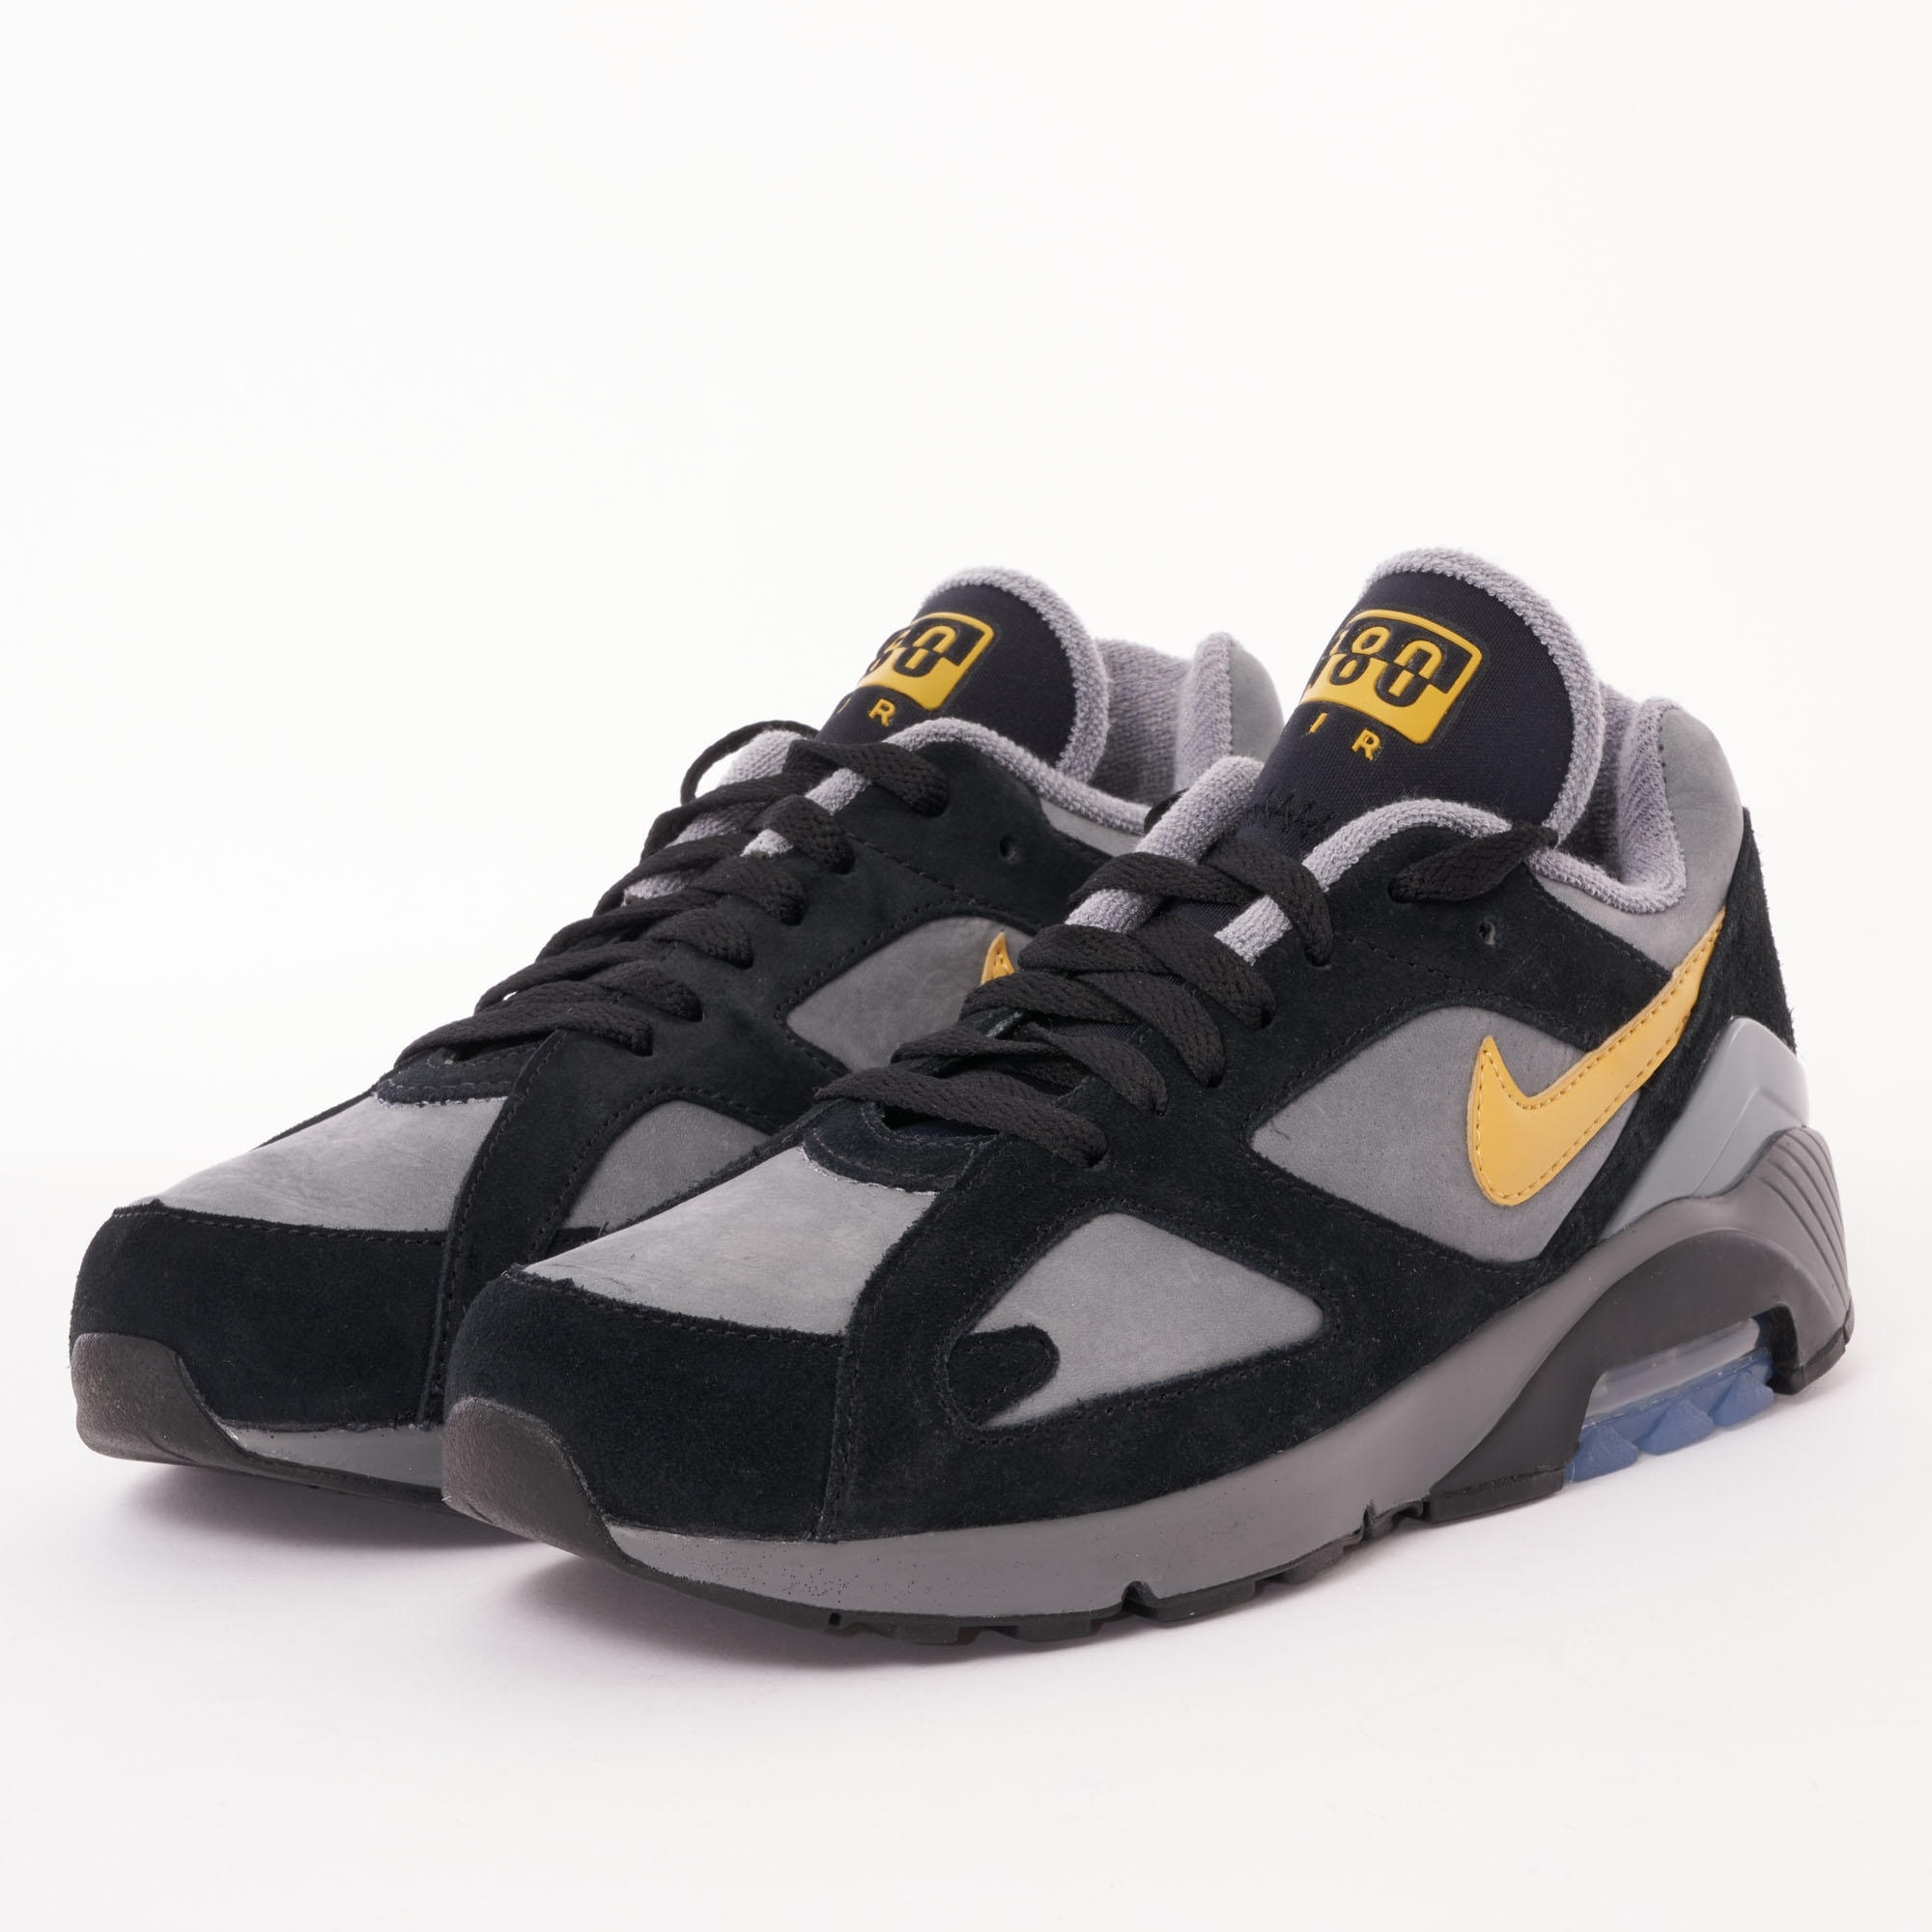 Nike Air Max 180 | Grijs | Sneakers | AV7023 001 | Caliroots